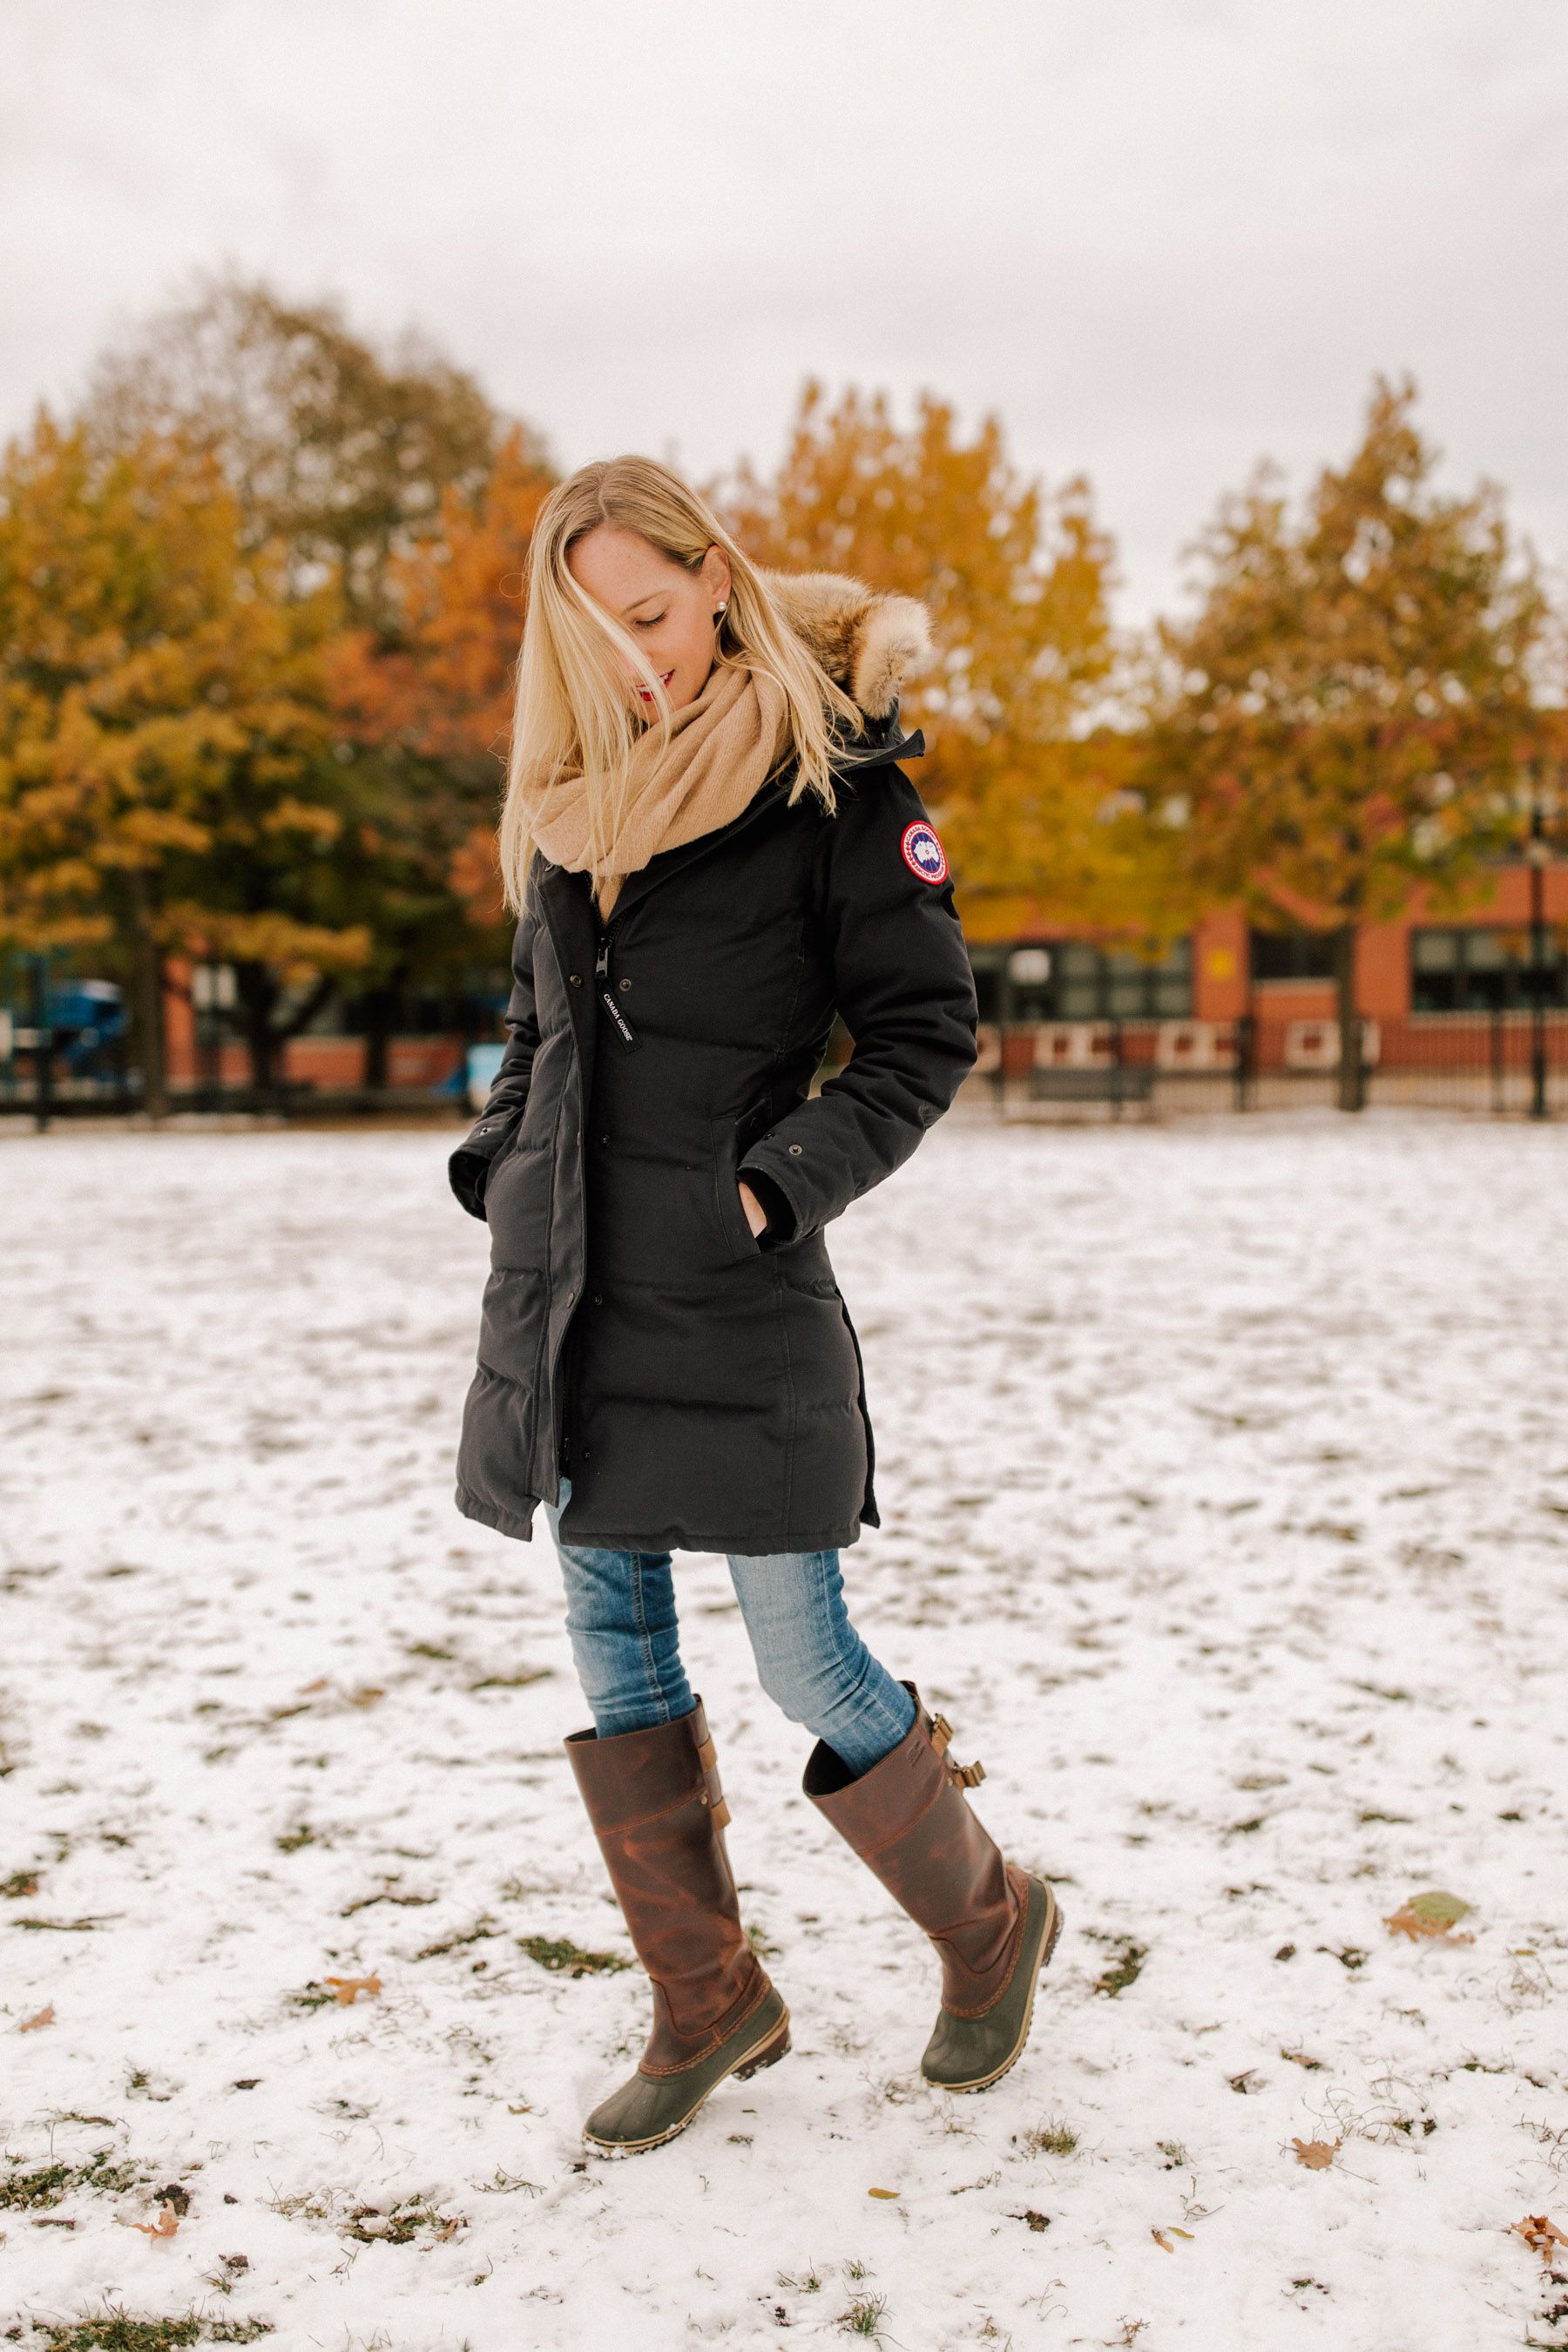 e3cce6dfb5f Canada Goose Shelburne Review - Kelly in the City Preppy Style Winter,  Preppy Winter Outfits